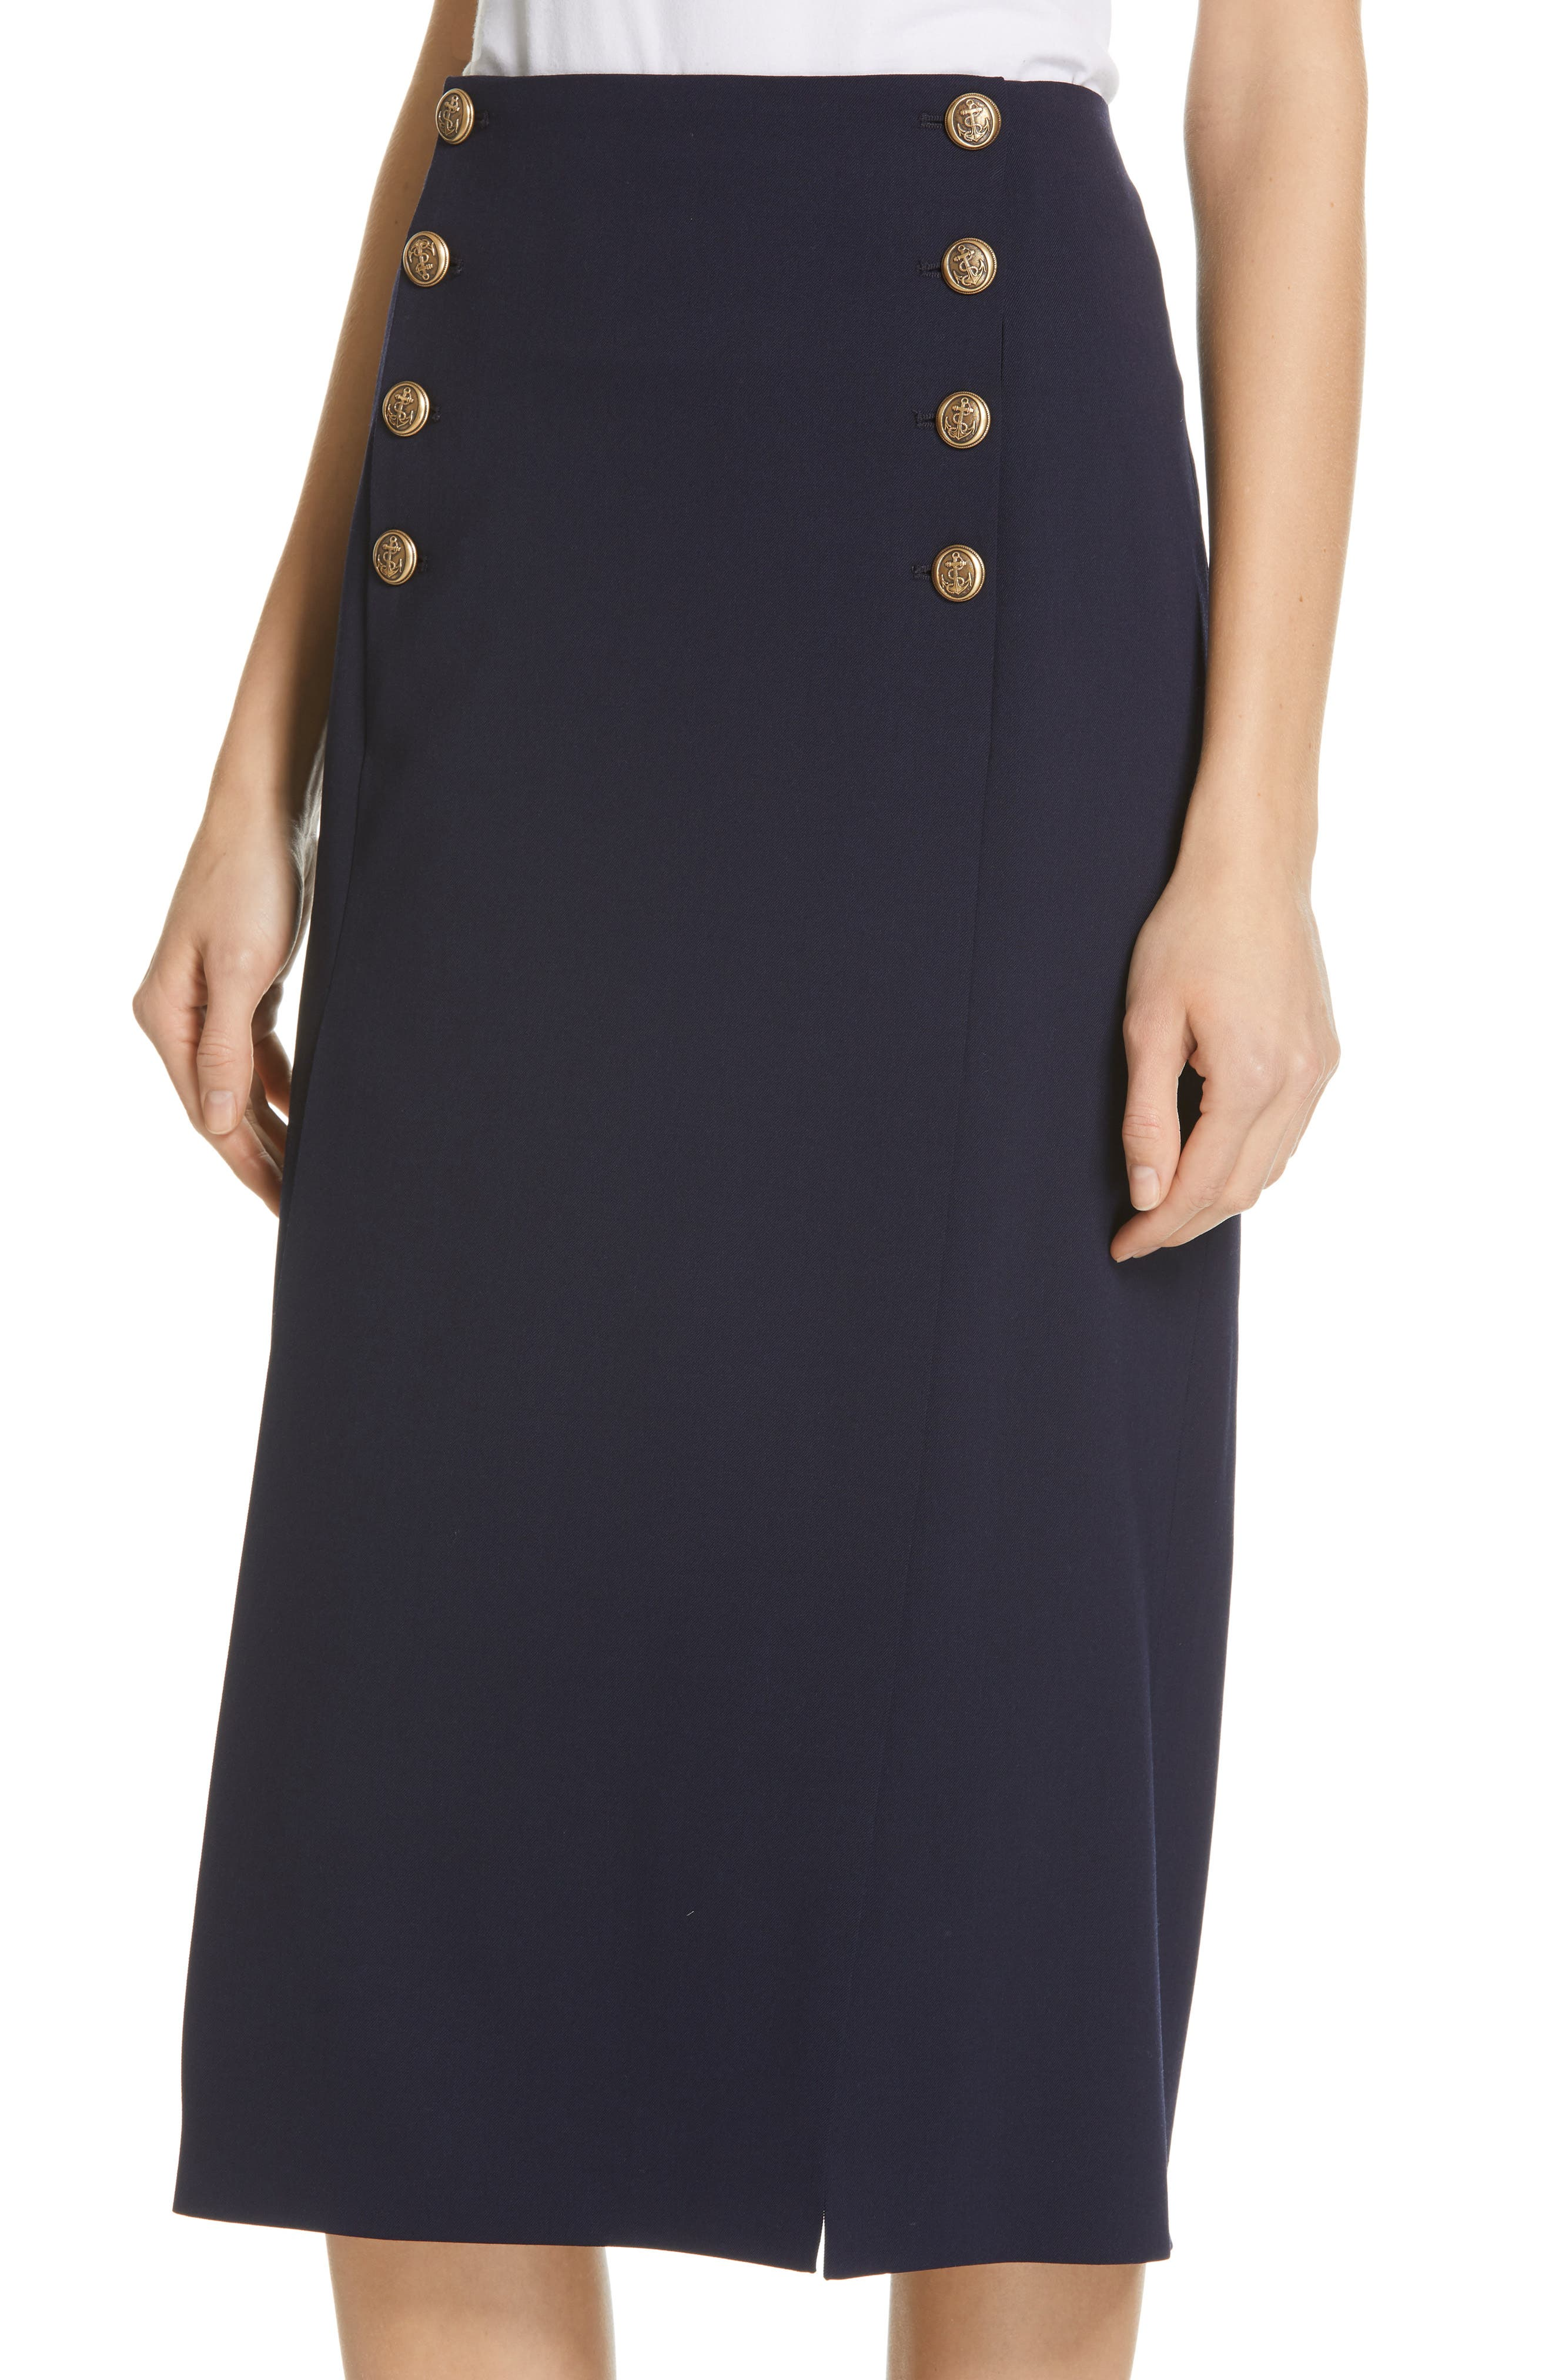 POLO RALPH LAUREN, A-Line Skirt, Alternate thumbnail 4, color, NAVY